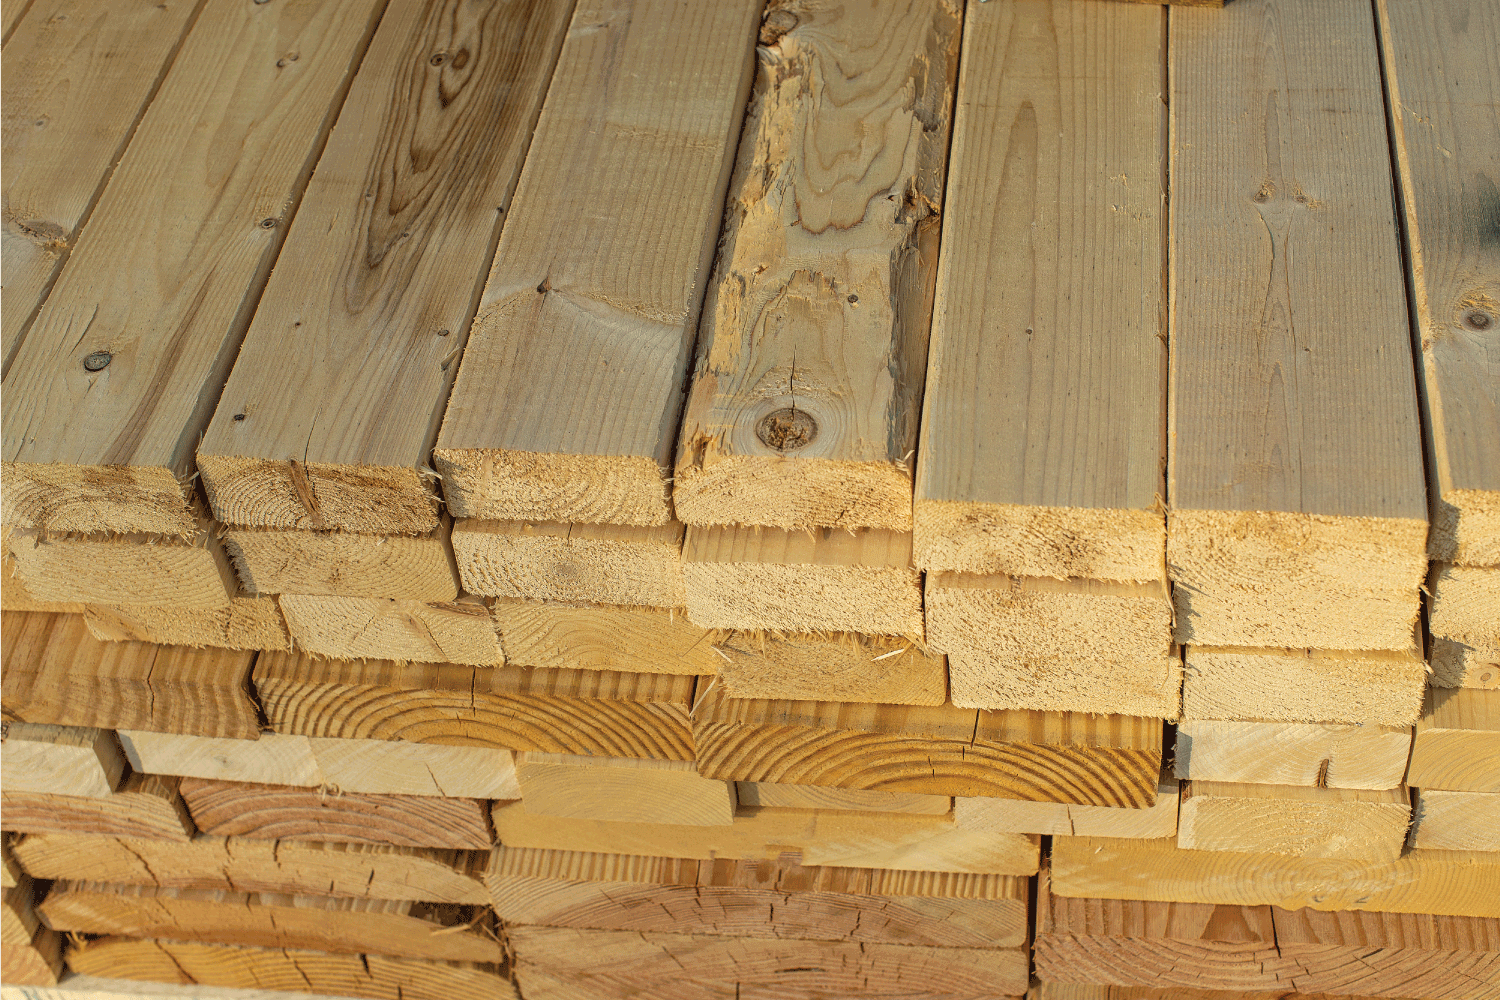 A stack of wood 2x4 beams, view of rough cut ends